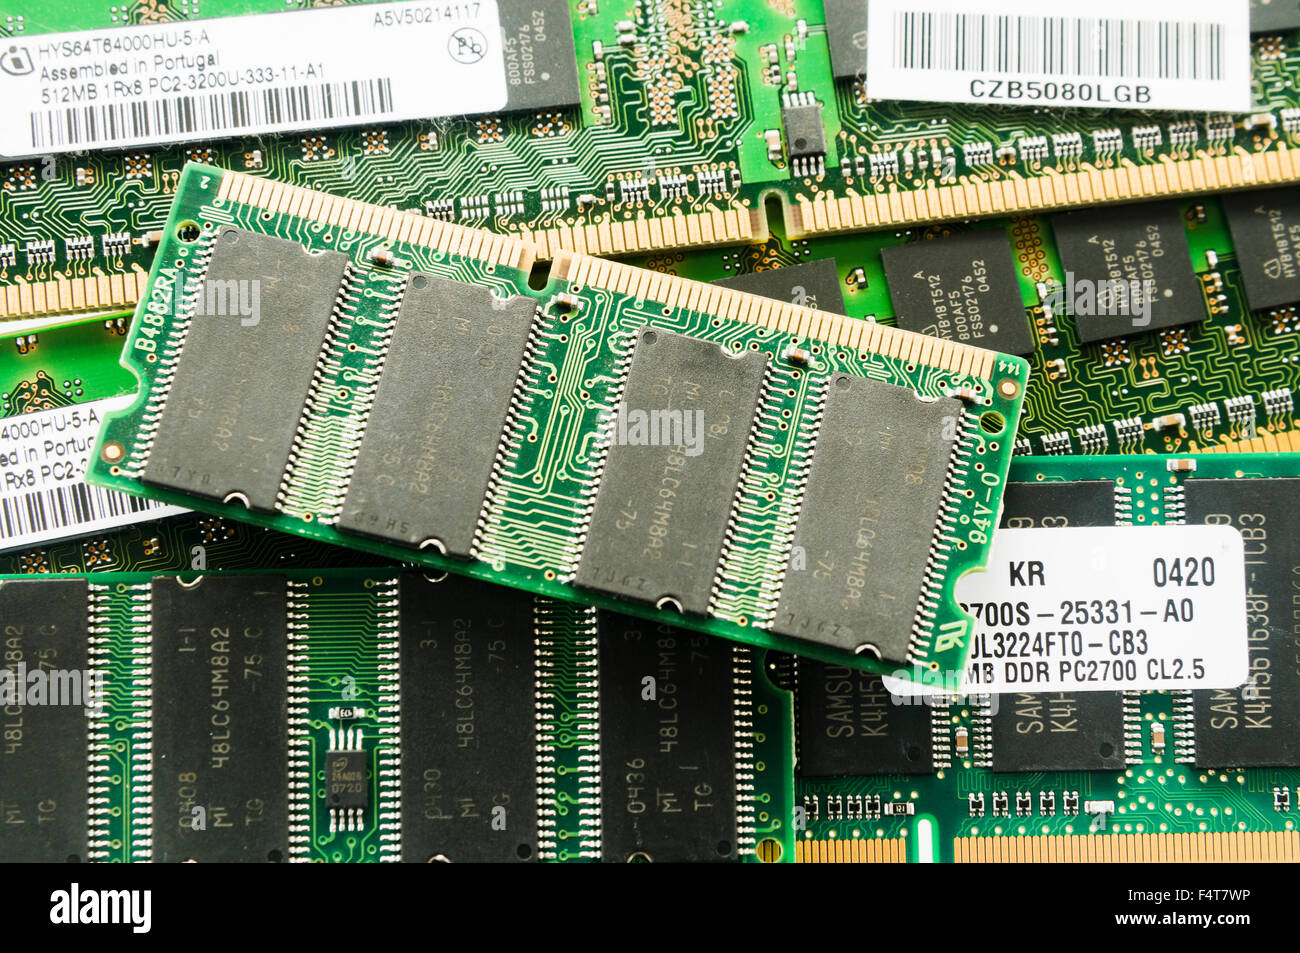 Various computer memory cards. - Stock Image